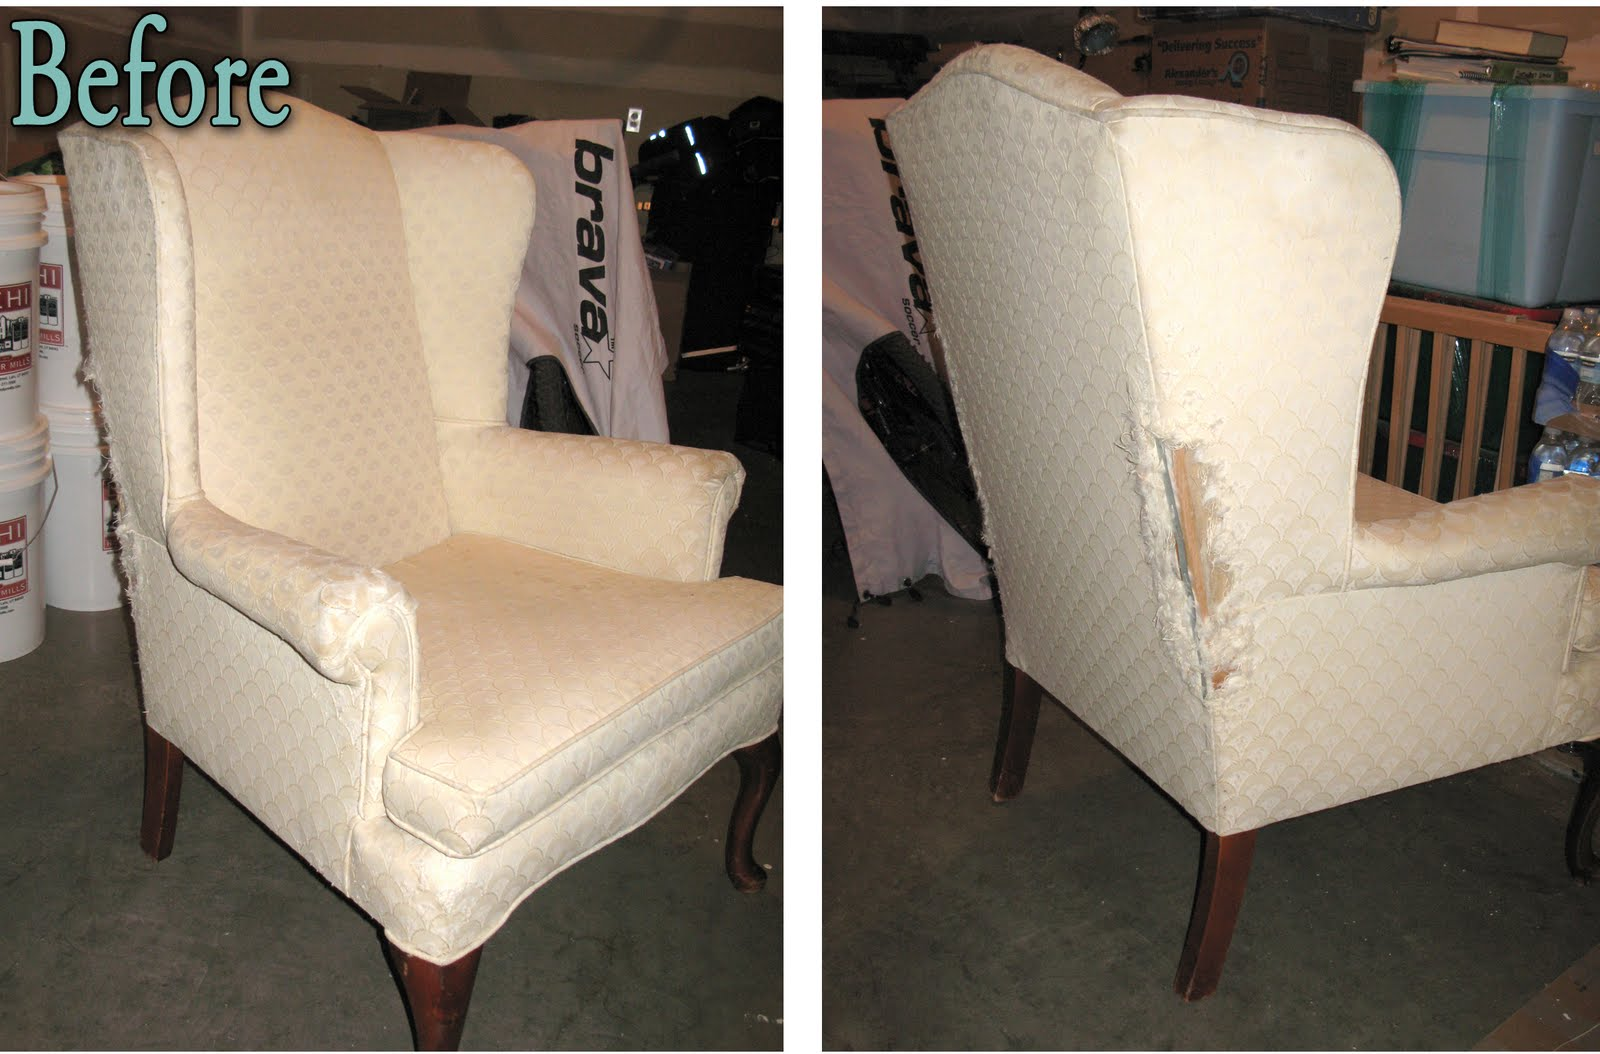 Companies That Reupholster Sofas Funny Sofa Pictures Modest Maven Vintage Blossom Wingback Chair